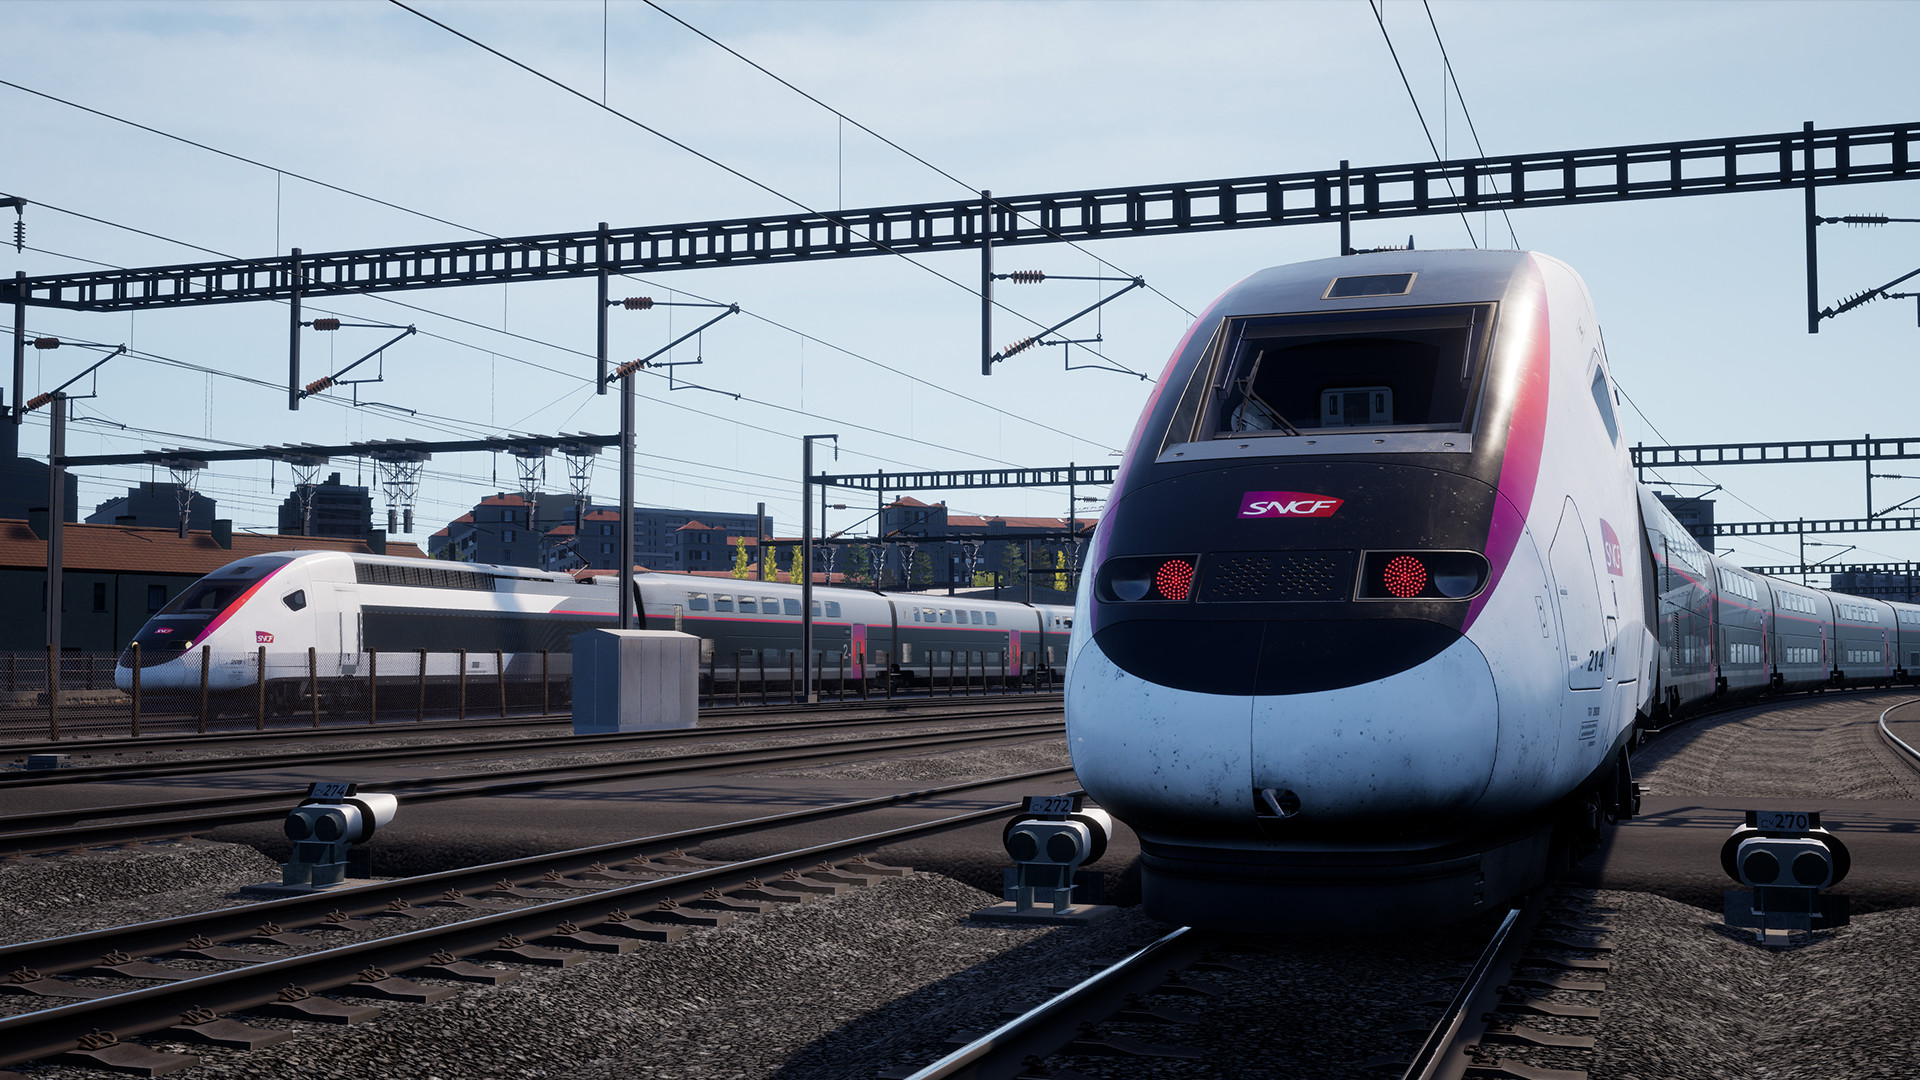 Train Sim World® 2: LGV Méditerranée: Marseille - Avignon Route Add-On PC Key Fiyatları